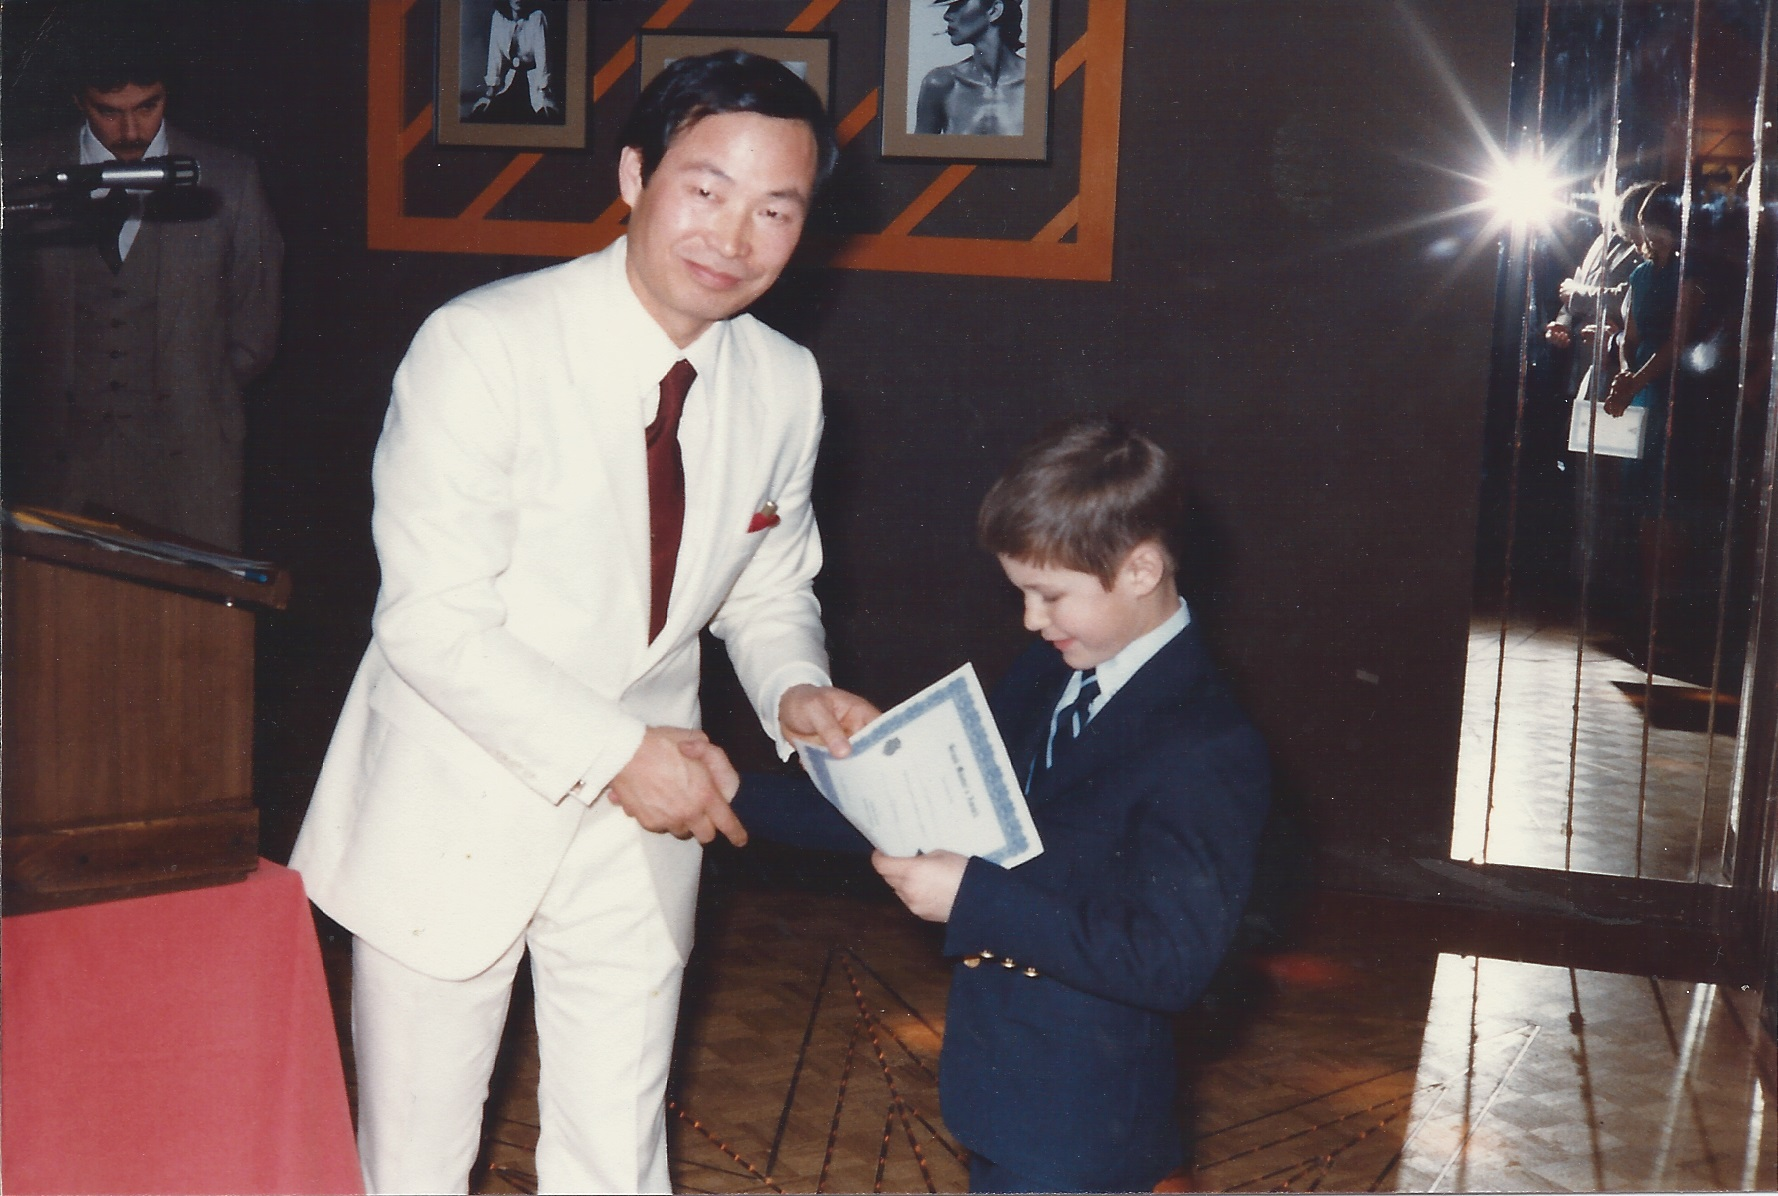 0081 United Tae Kwon Do Annual New Year's Party Darren Levack for Youthful Dedication 1980-01-05.jpg